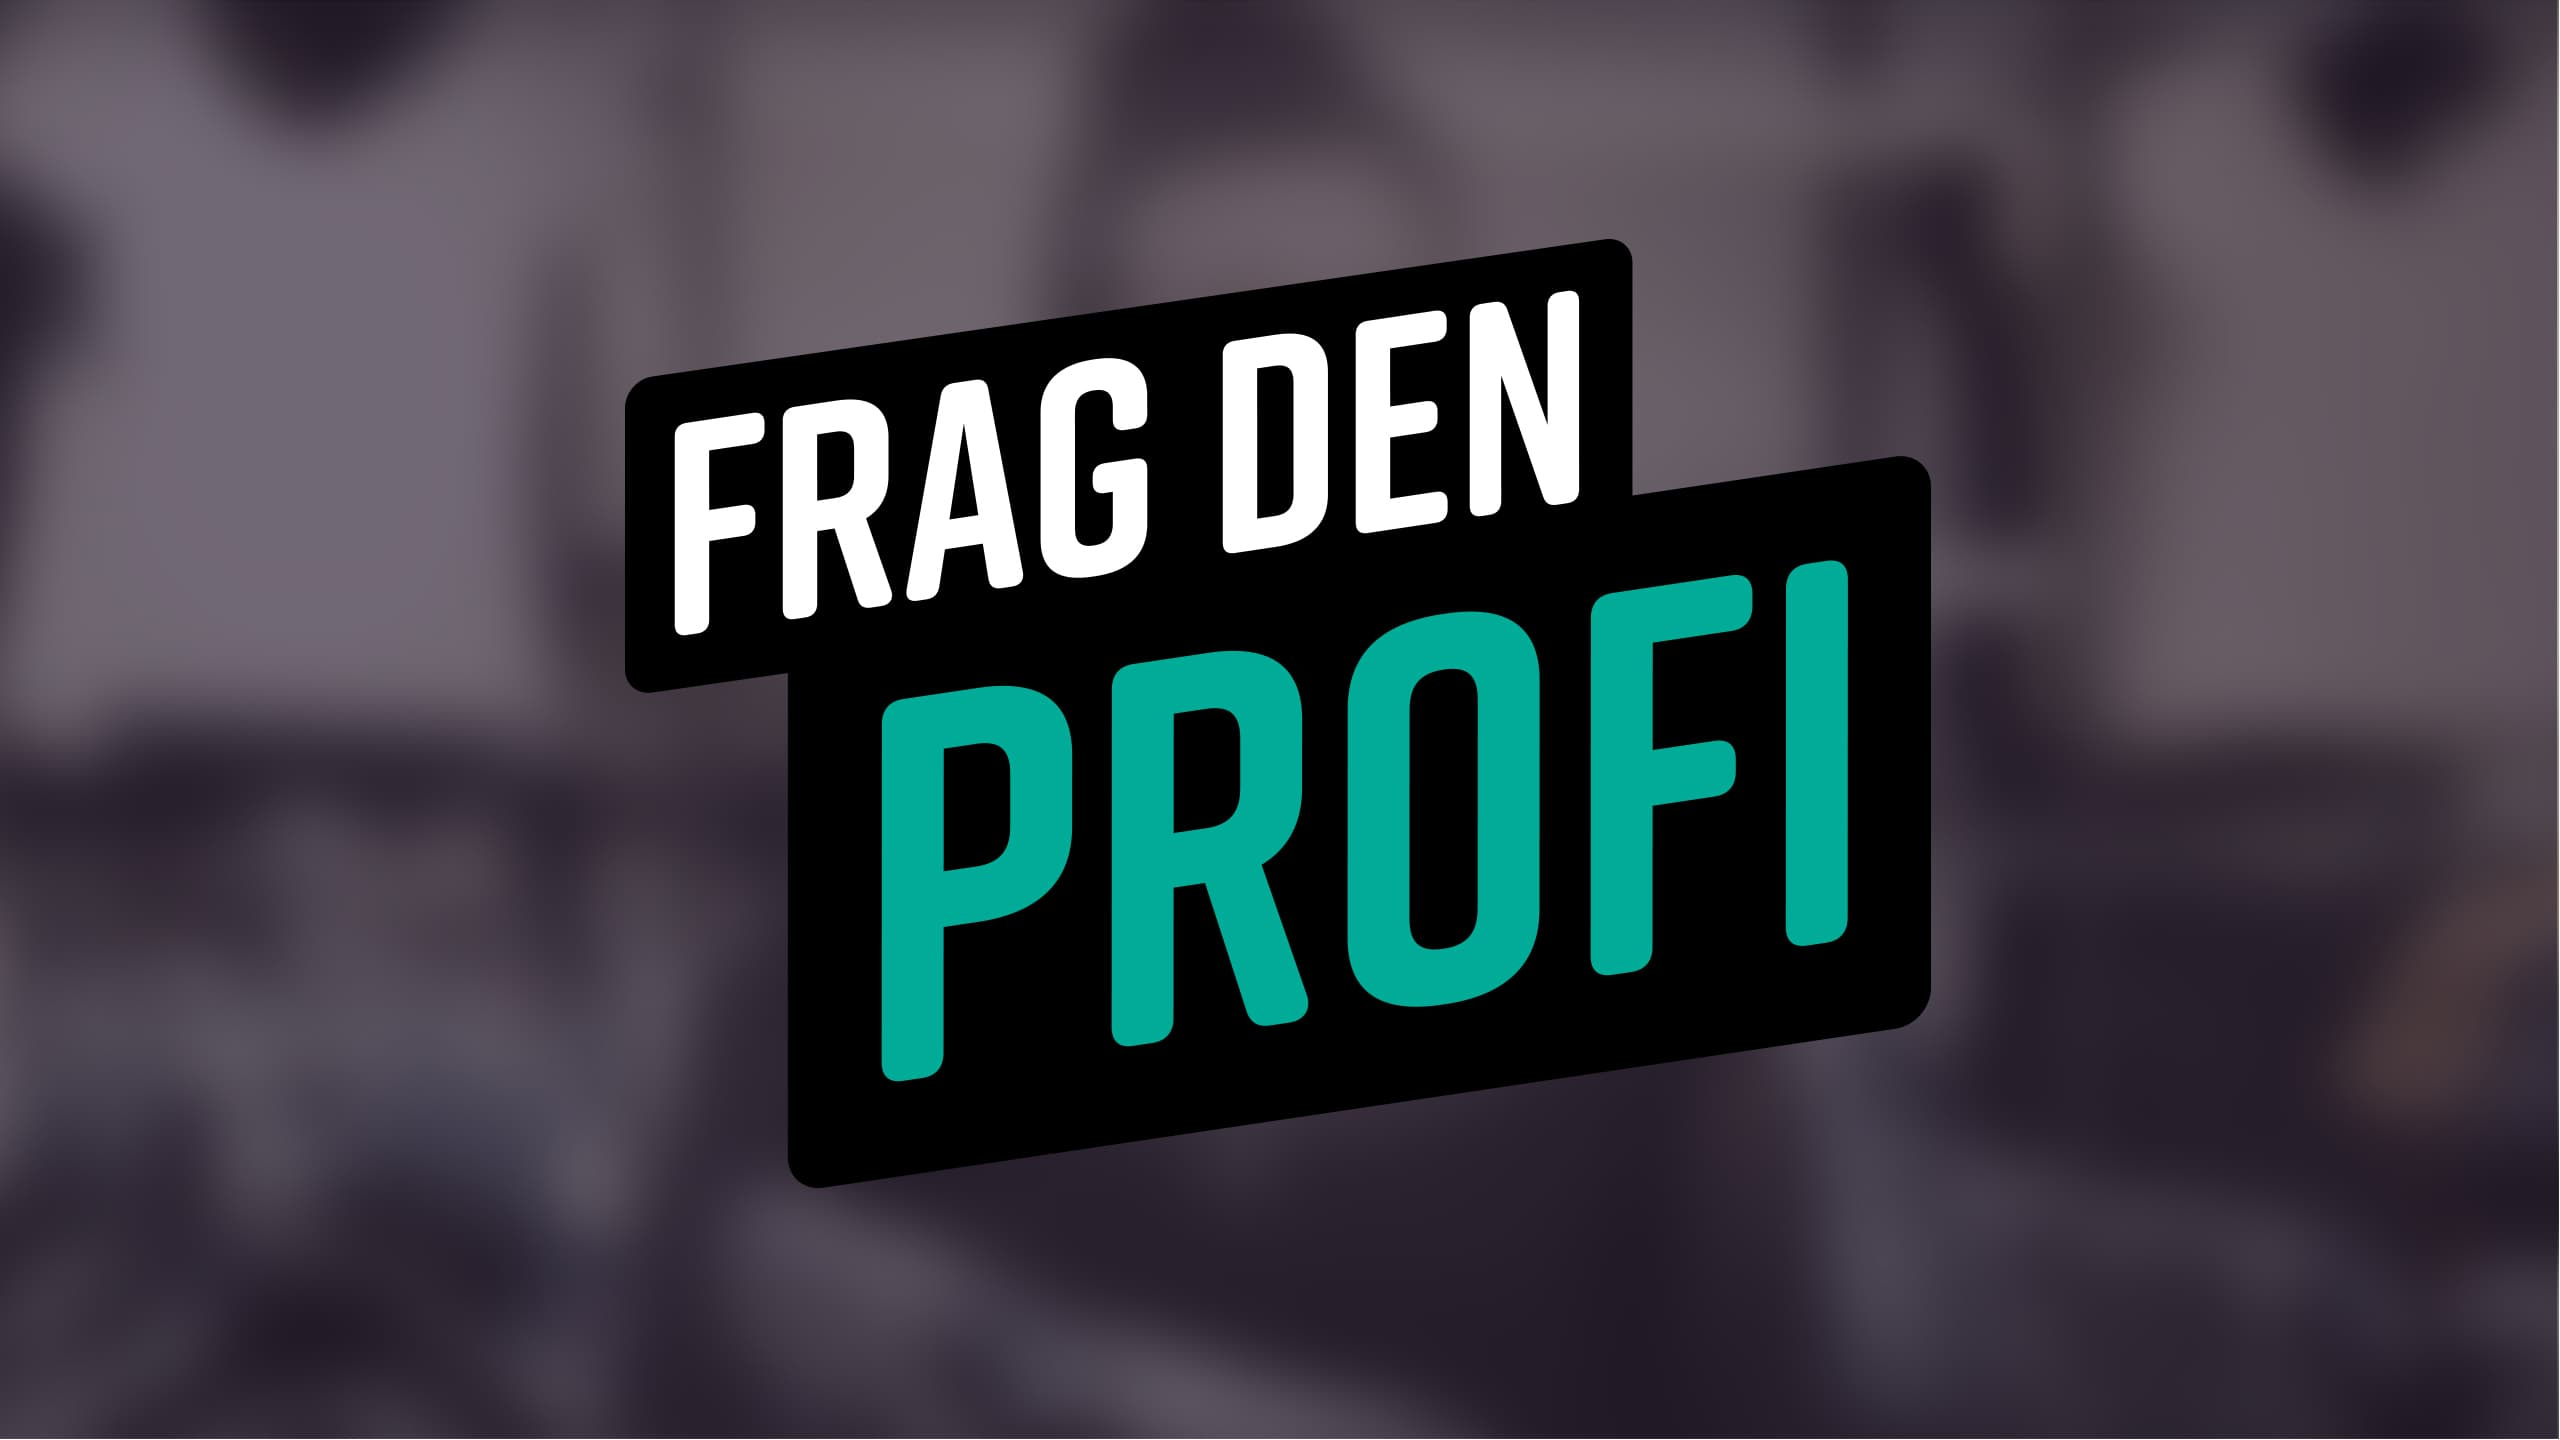 https://jetztschonprofi.de/wp-content/uploads/2019/06/FAQ@2x_small.jpg